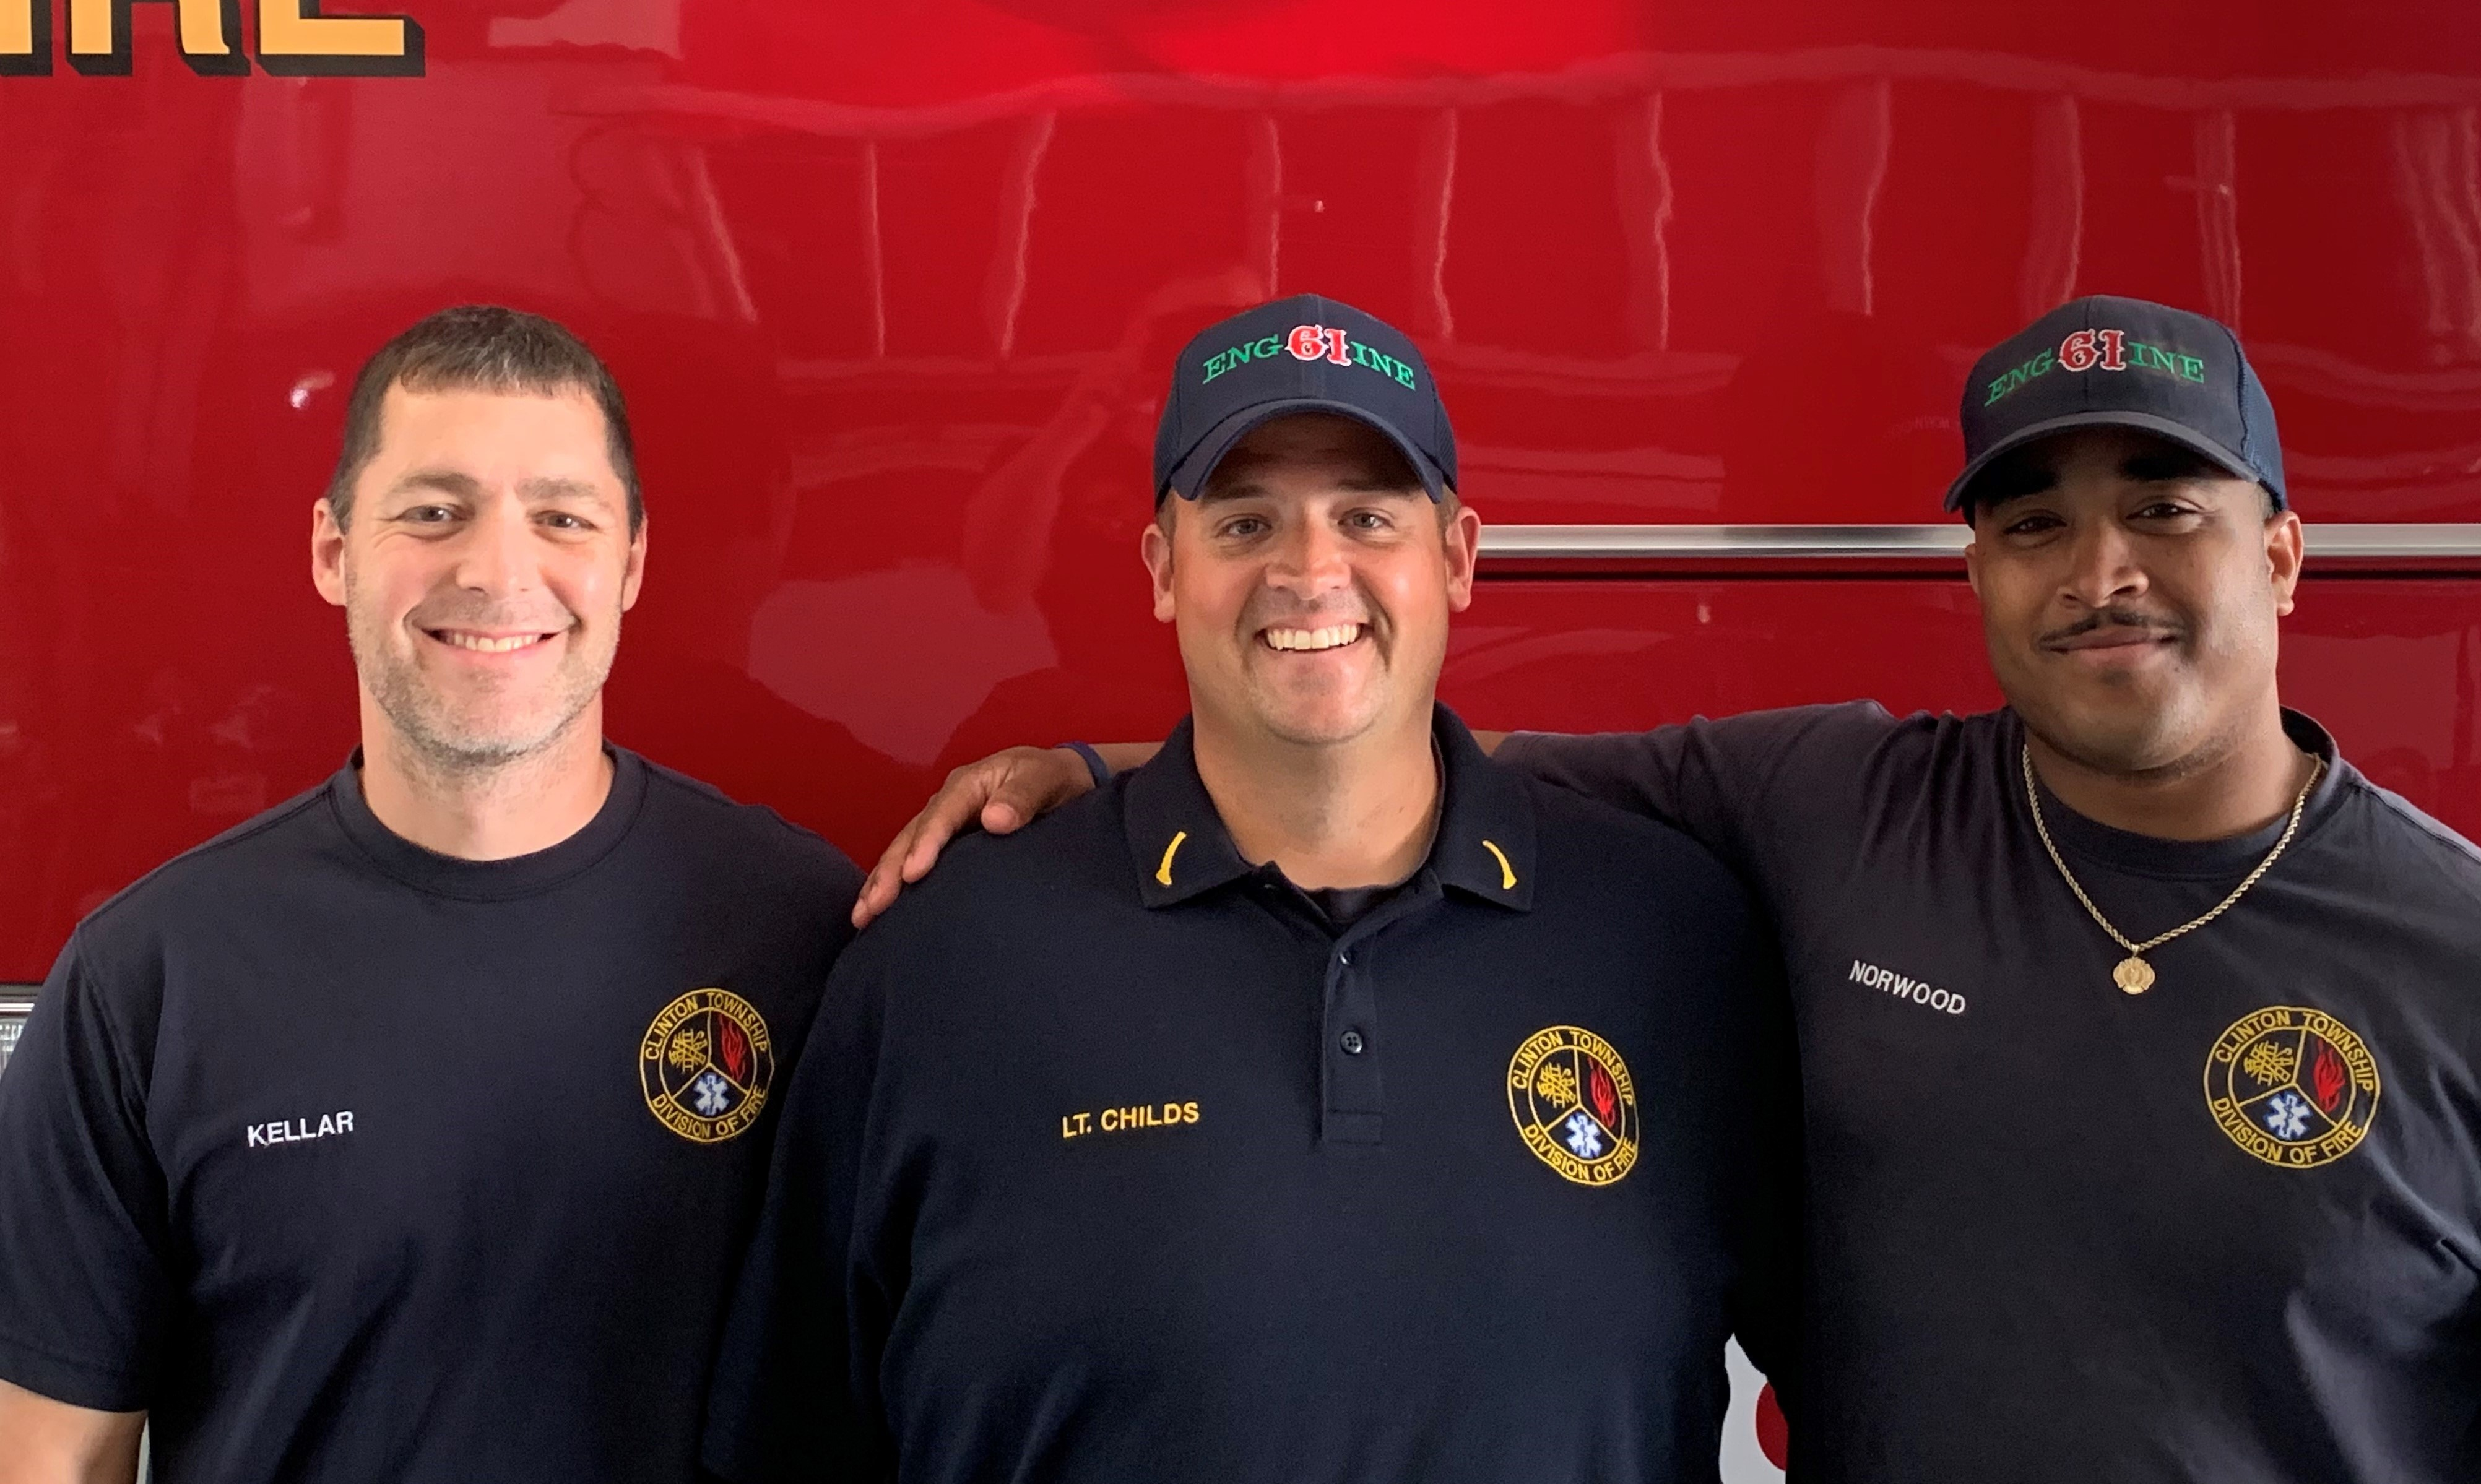 Firefighter Kellar, Fire Lieutenant Childs and Firefighter Norwood are smiling and standing in front of a firetruck.